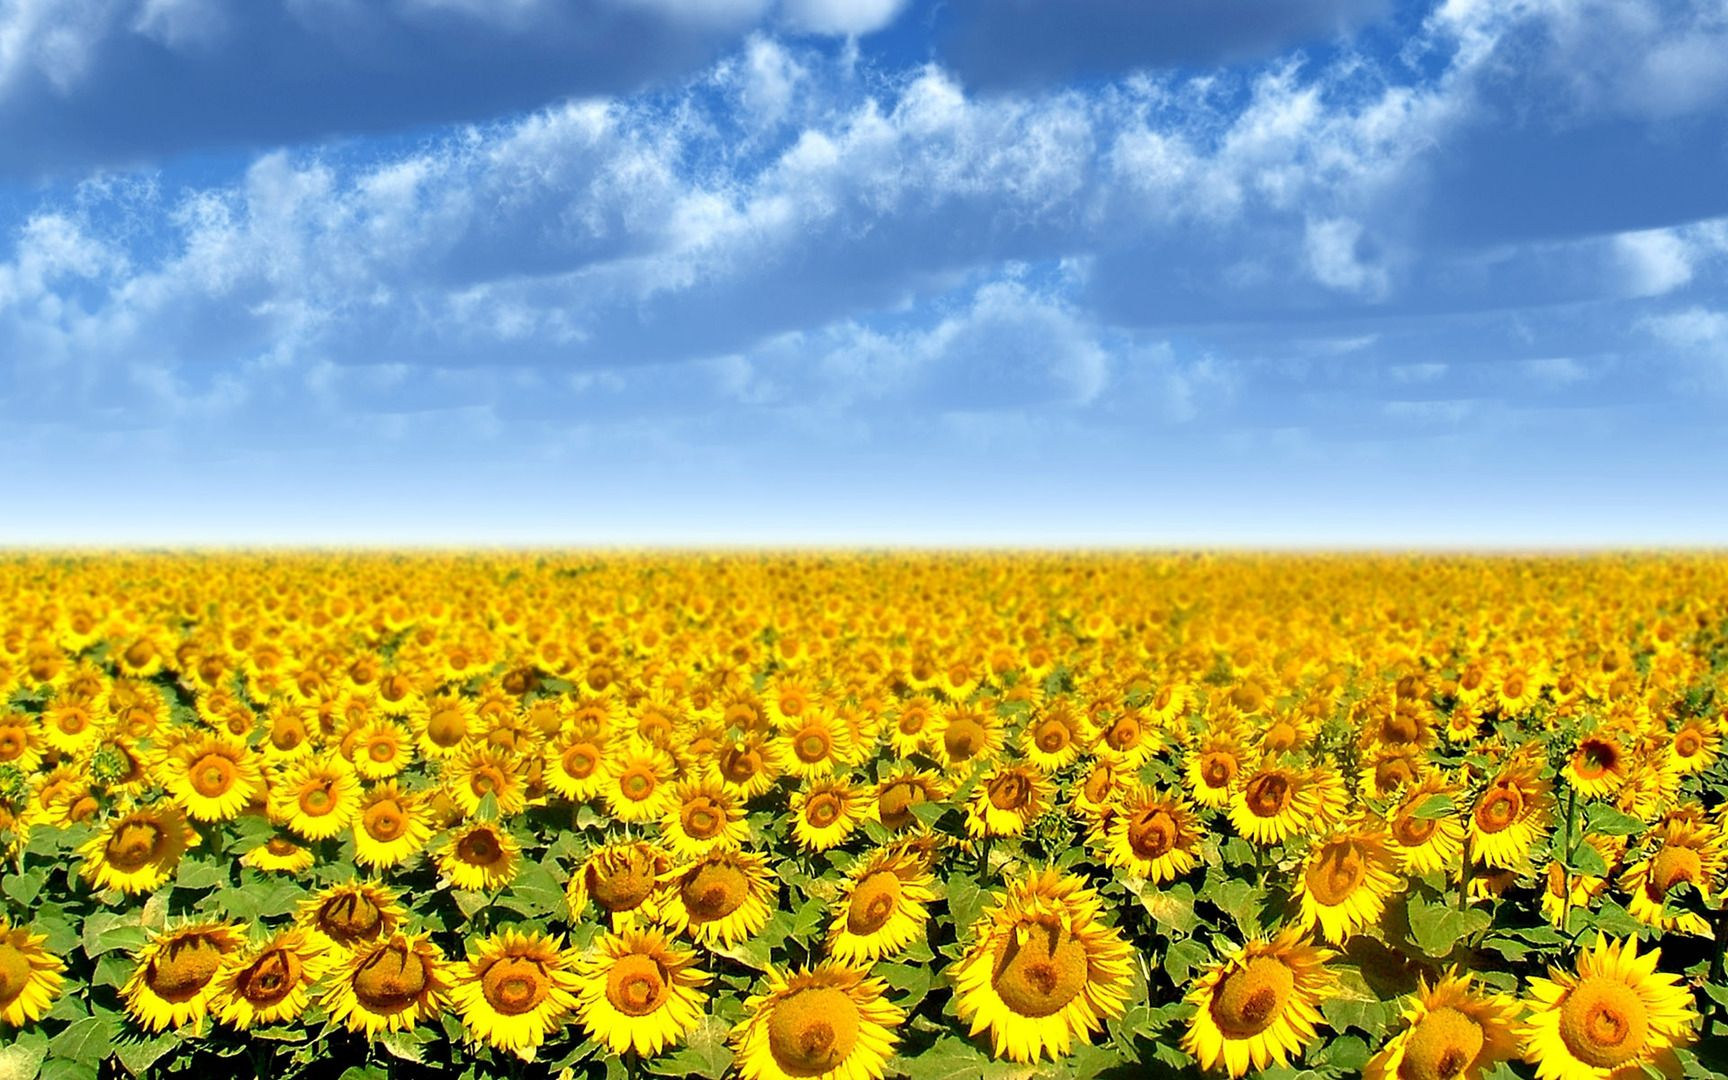 Sunflower Field Flowers 1080p Hd Wallpaper For Desktop Sunflowers Background Sunflower Fields Sunflower Wallpaper